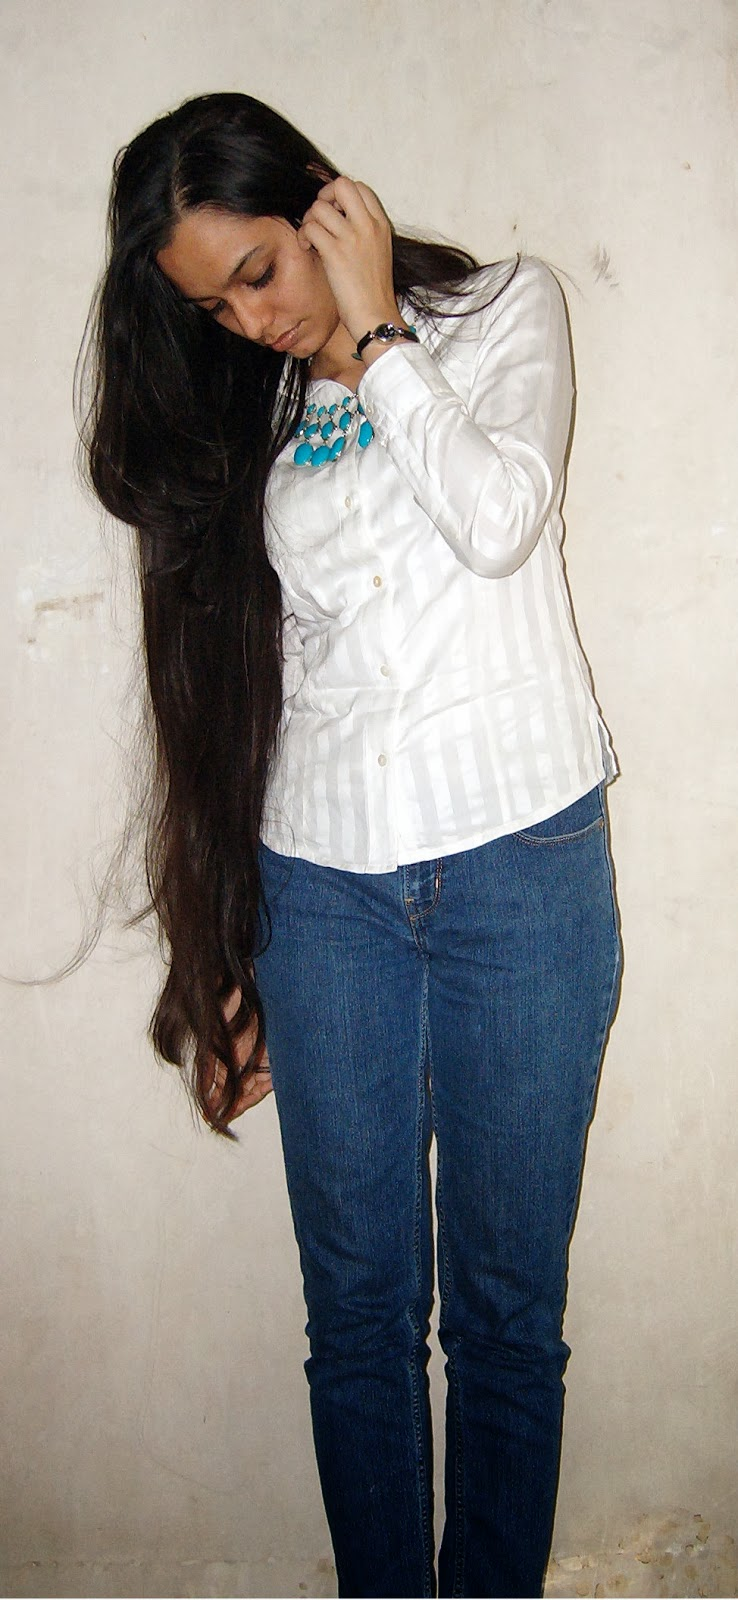 street shopping, what to buy on hill road, bandra street shopping, pantaloons sale, white shirt, long hair, blue jeans